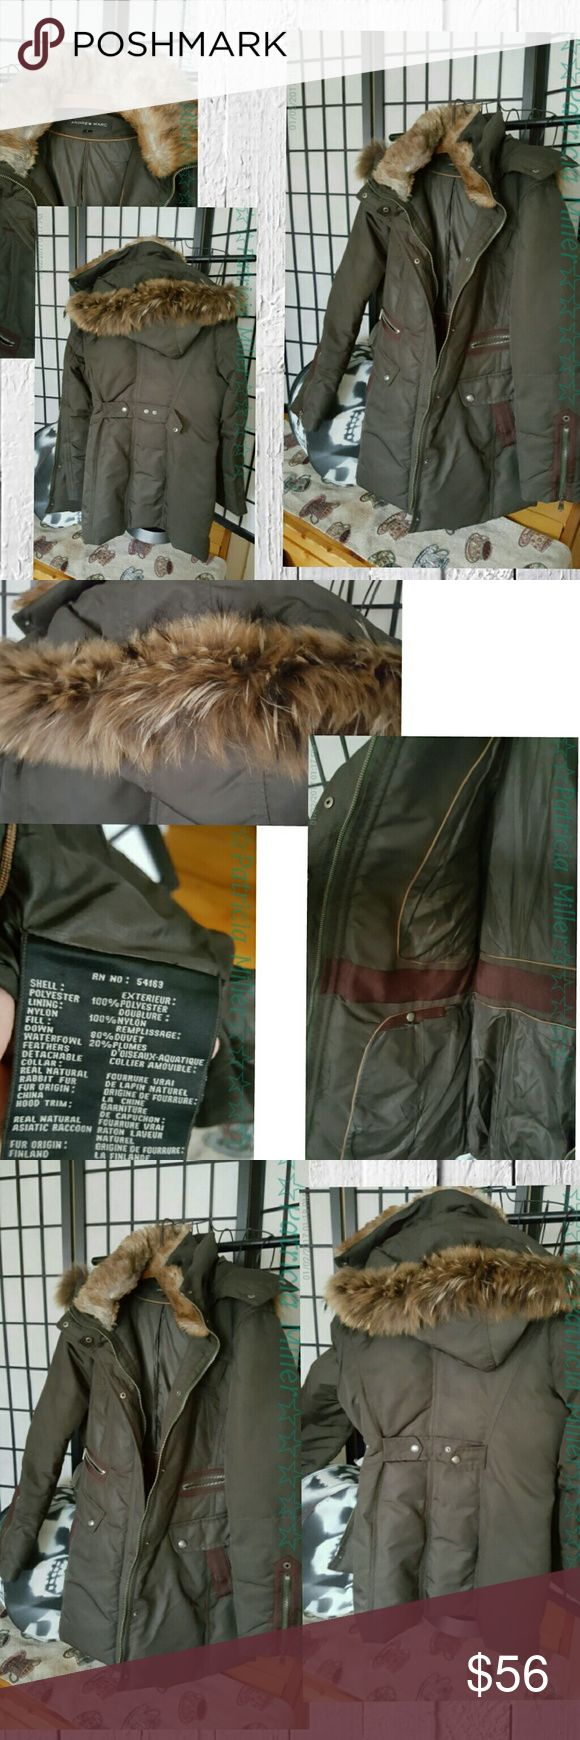 Andrew Marc down coat army green real fur Andrew Marc down coat  army olive green  real fur trim and hood  Down filled  Pockets inside Zipper works great  Excellent condition  Smoke-free closet No visible signs of wear or damage Andrew Marc Jackets & Coats Puffers